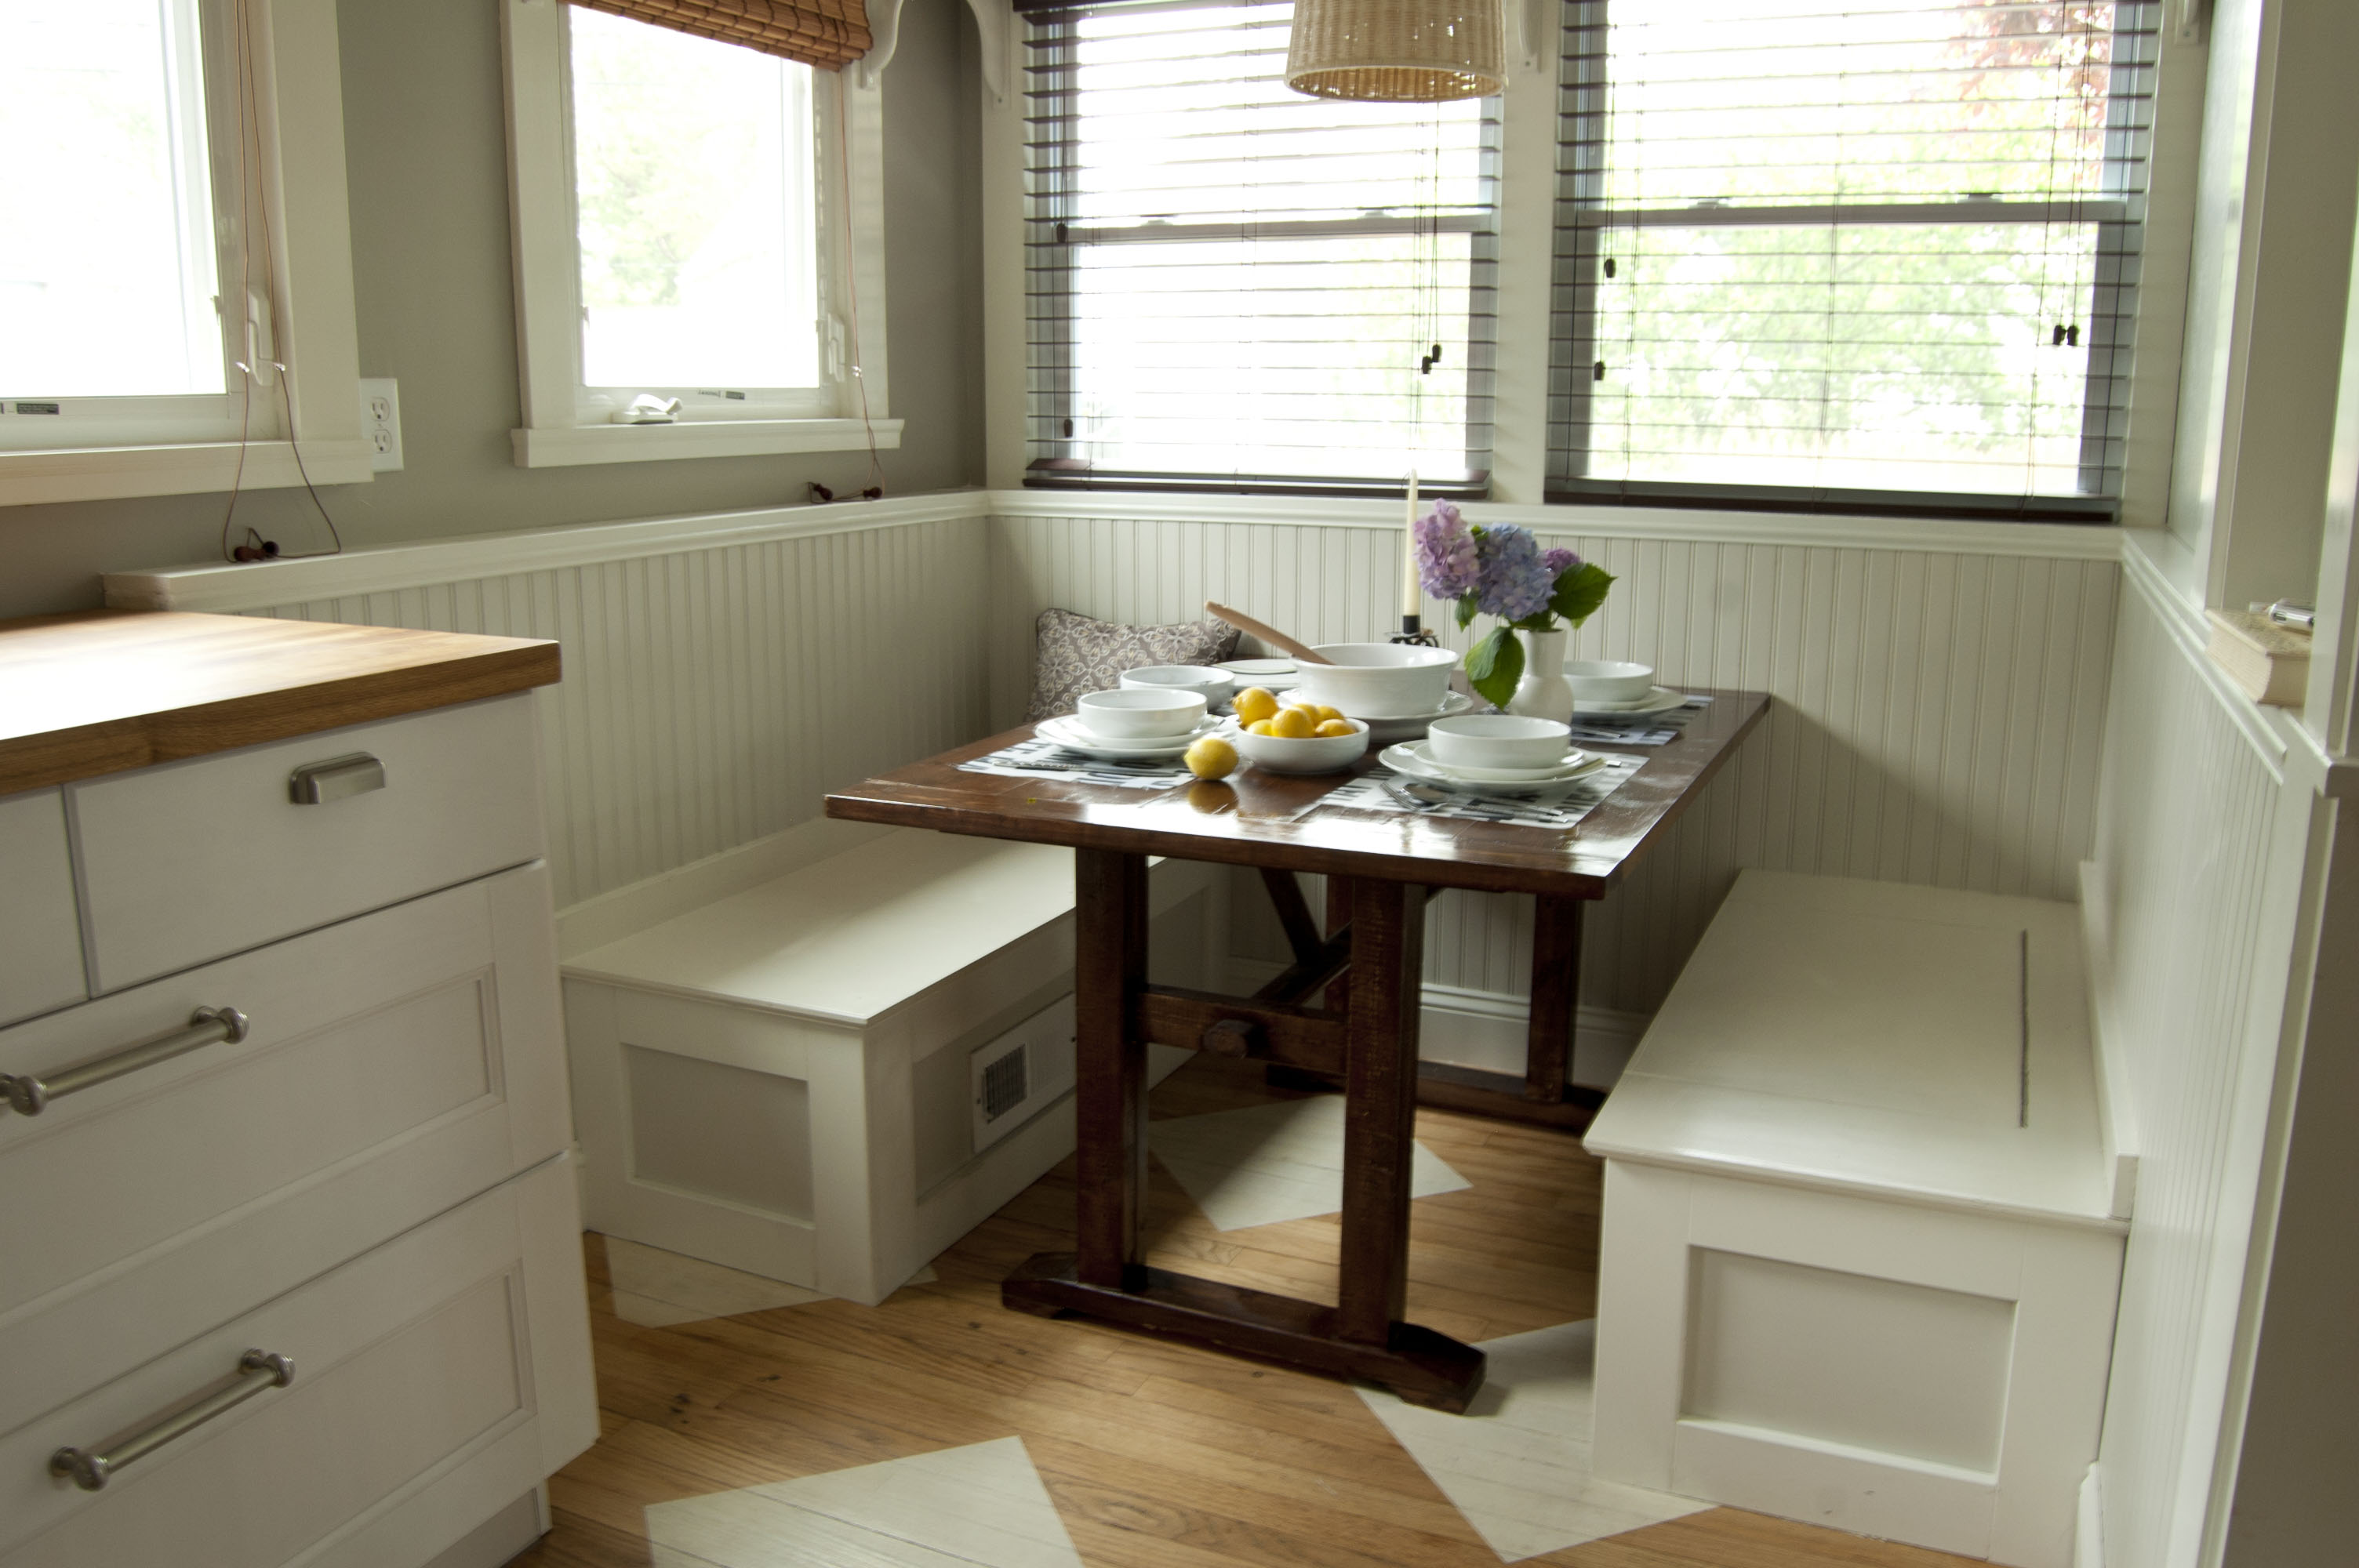 Diy Kitchen Corner Bench Plans Part 74